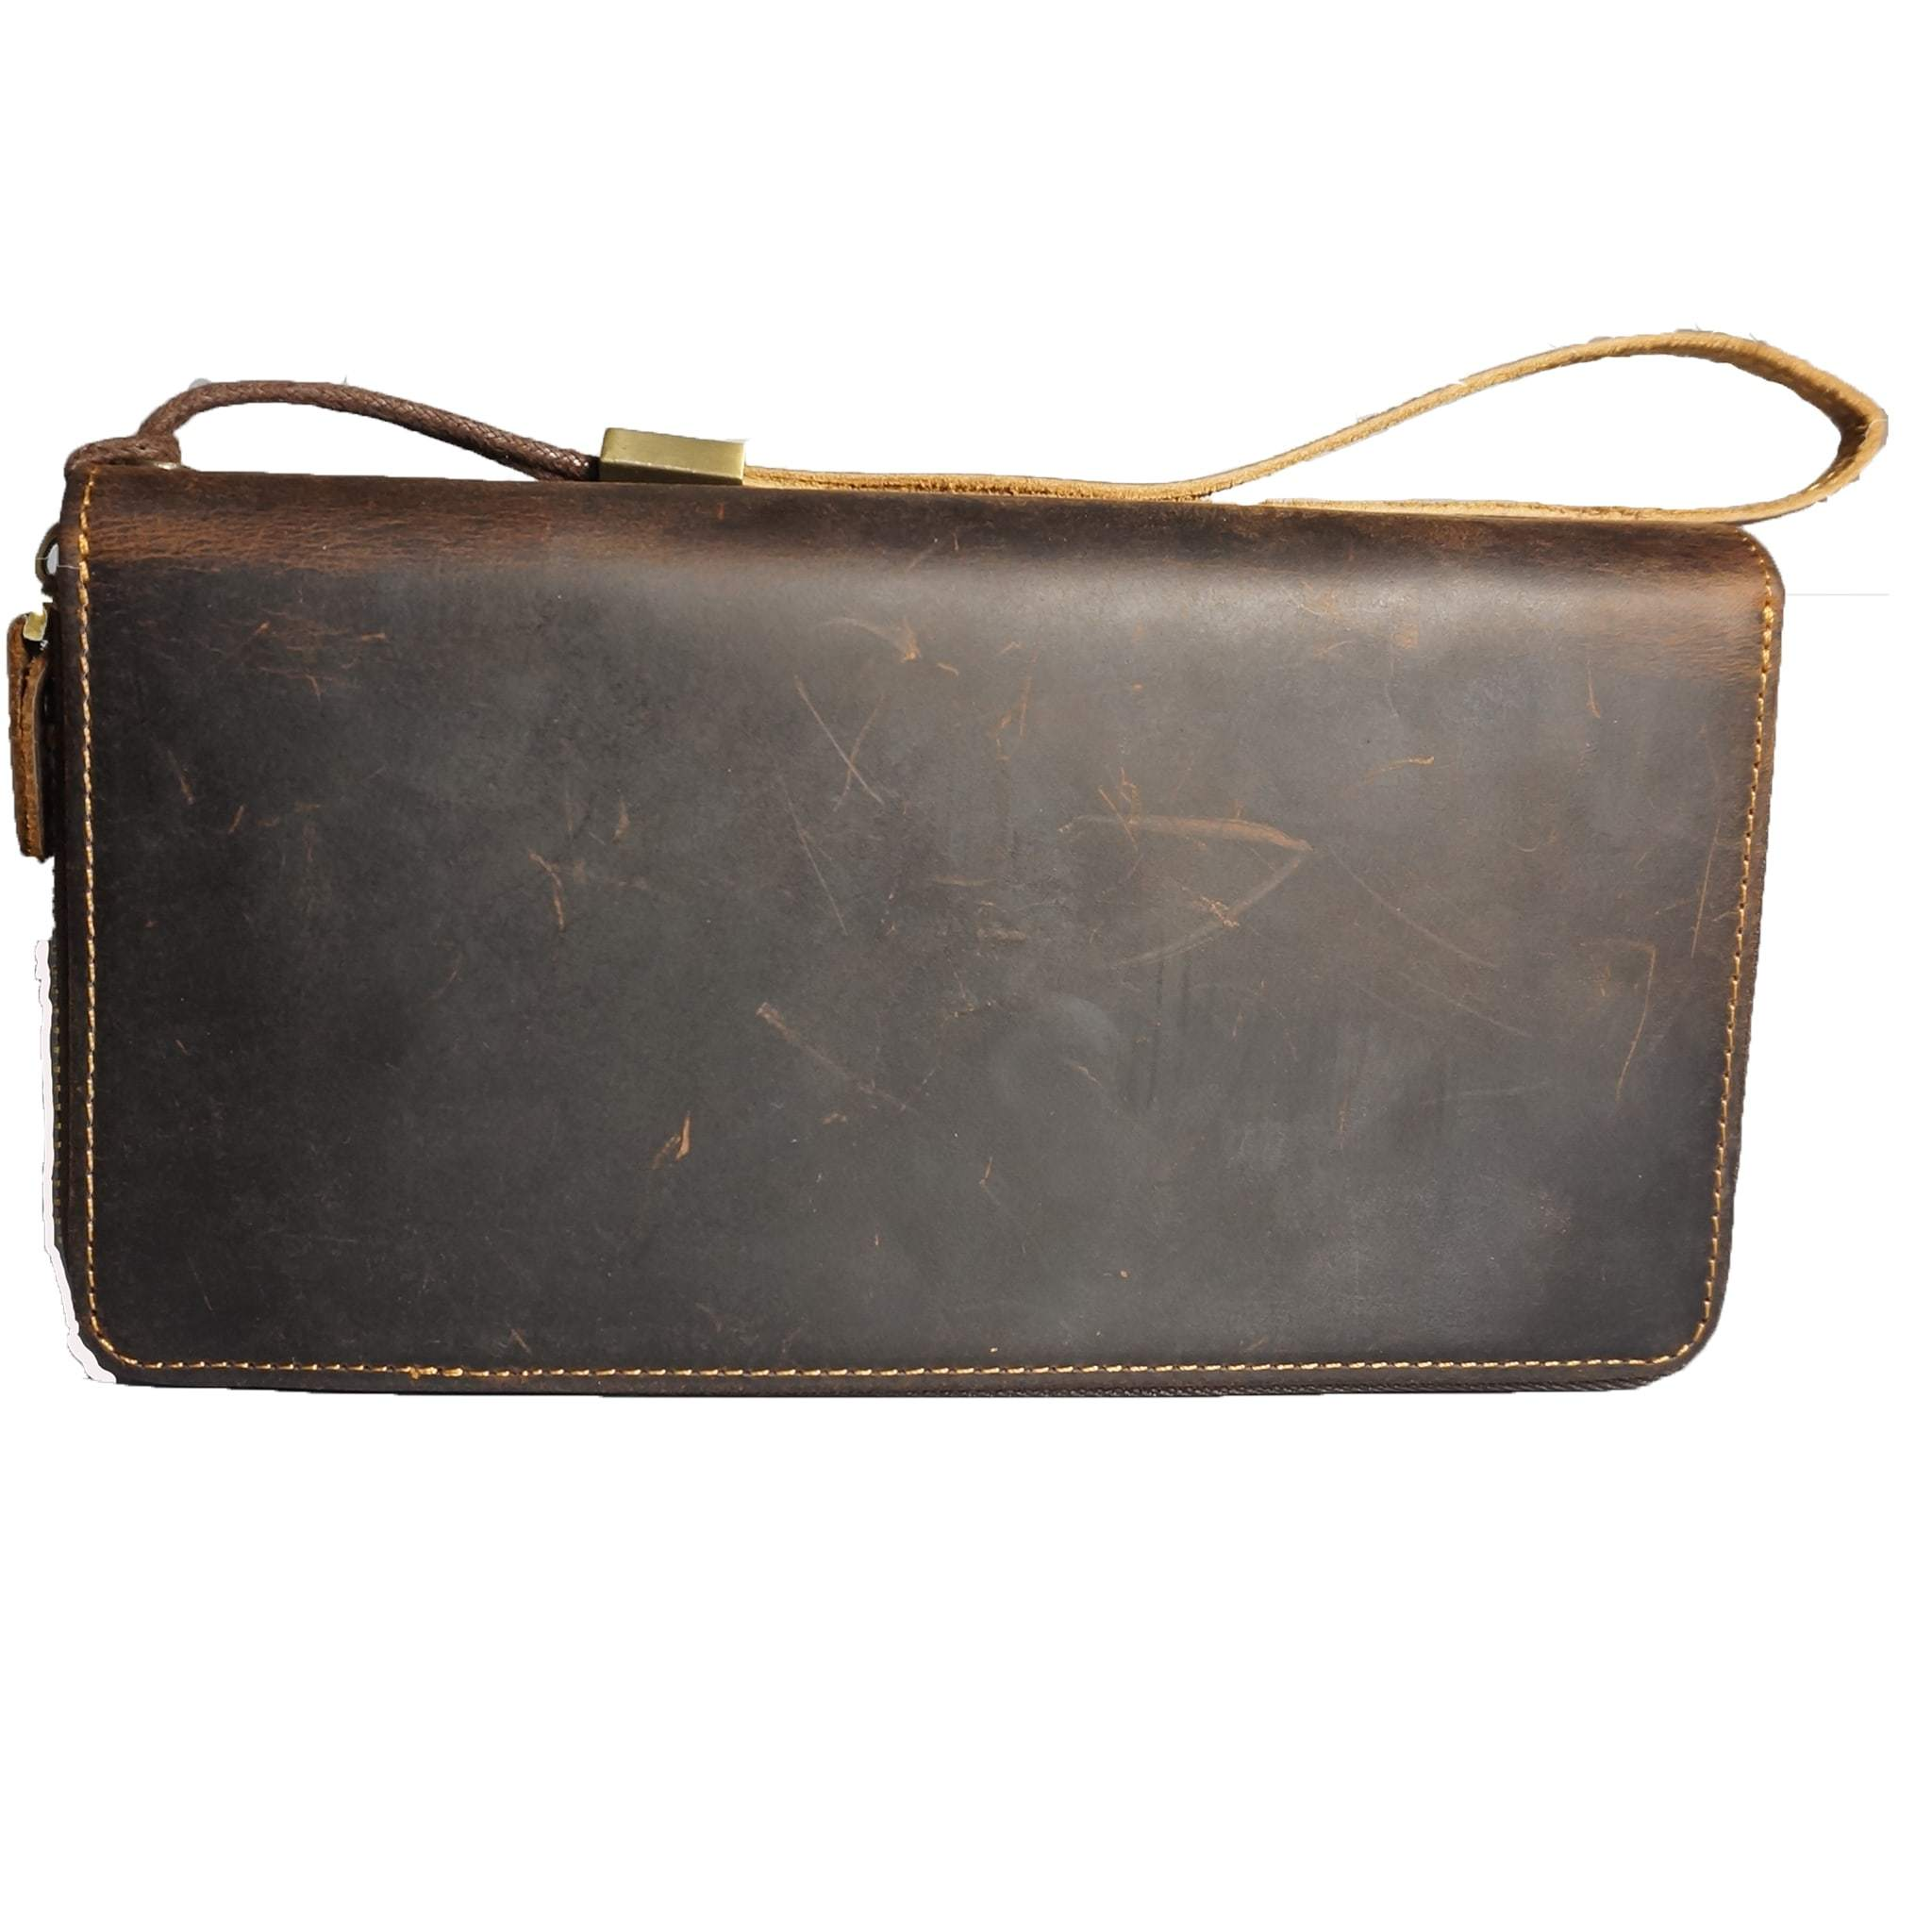 Sturdy Leather Zip around Clutch